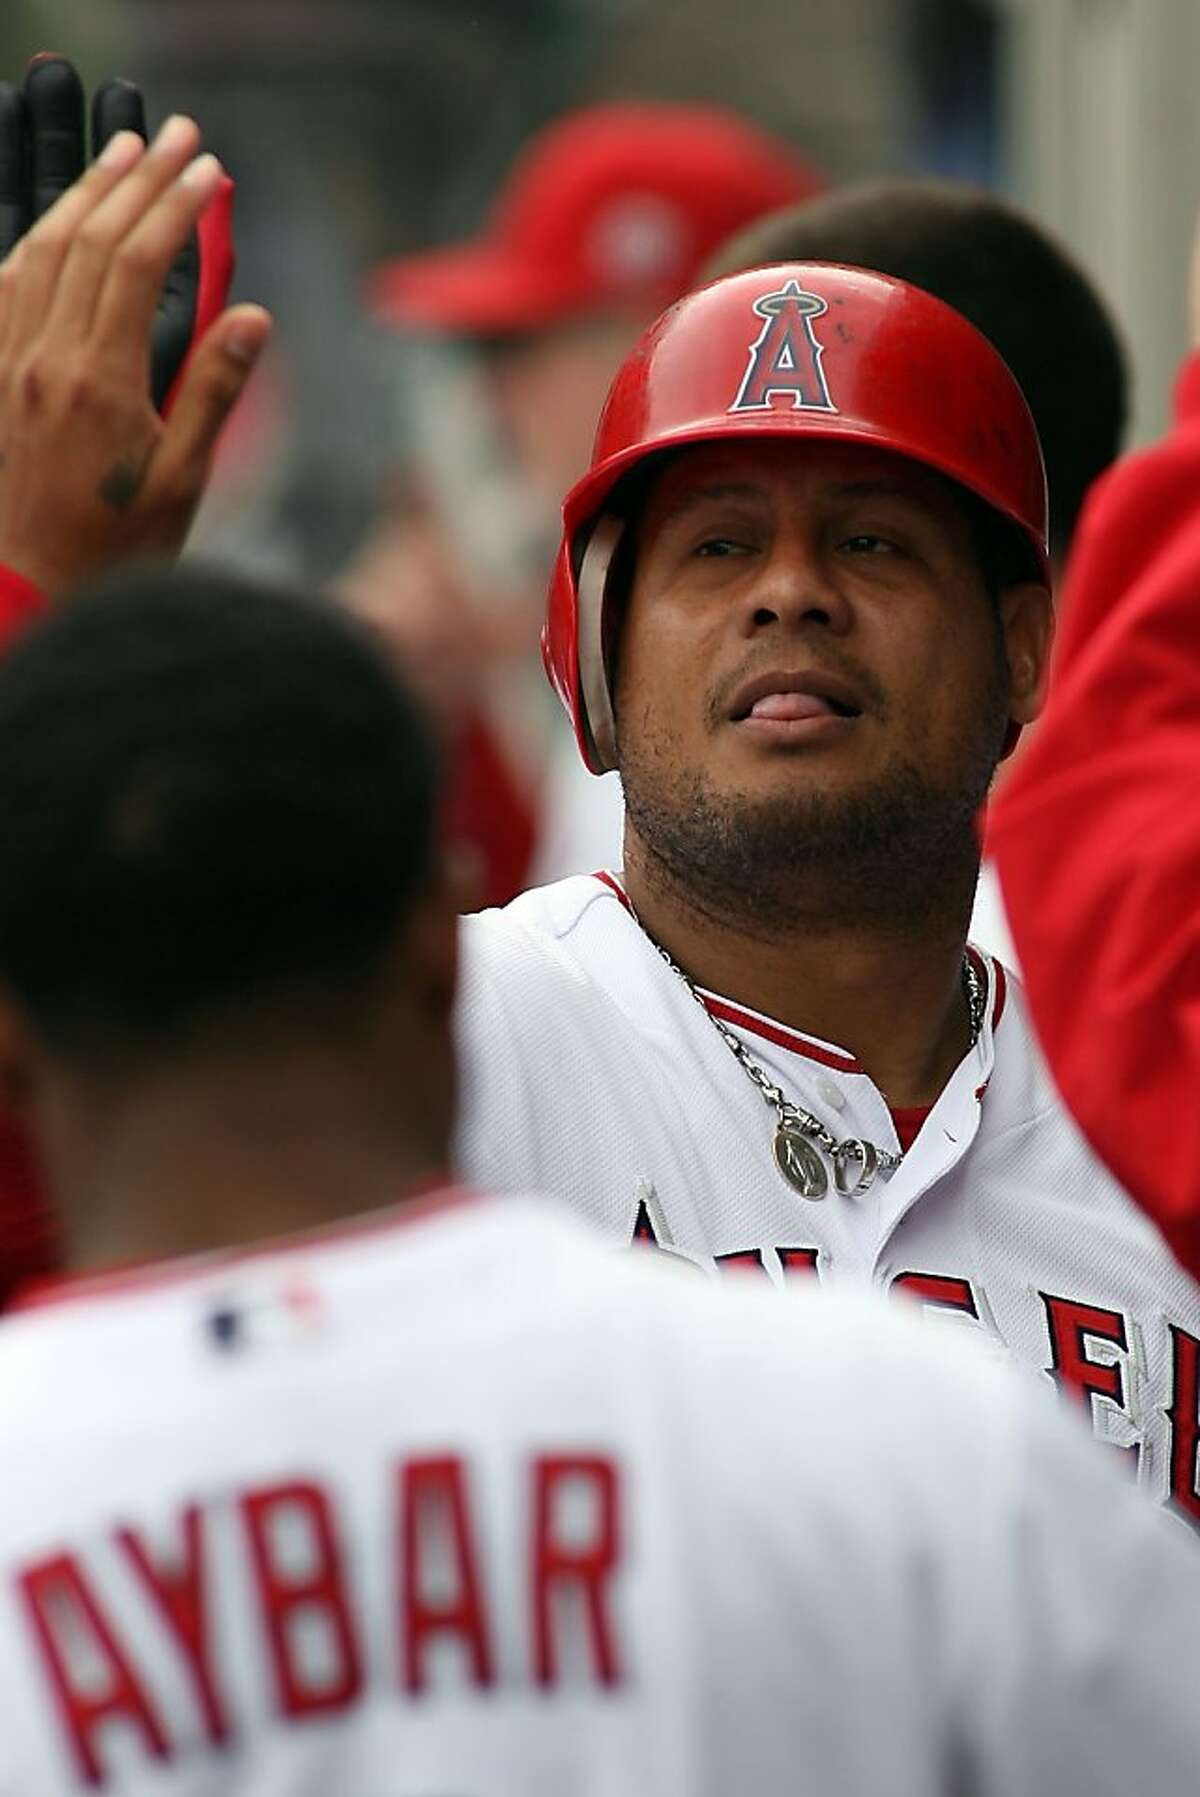 ANAHEIM, CA - SEPTEMBER 25: Bobby Abreu #53 of the Los Angeles Angels of Anaheim high-fives teammates in the dugout after hitting a solo home run against the Oakland Athletics in the third inning at Angel Stadium of Anaheim on September 25, 2011 in Anaheim, California. (Photo by Jeff Golden/Getty Images)